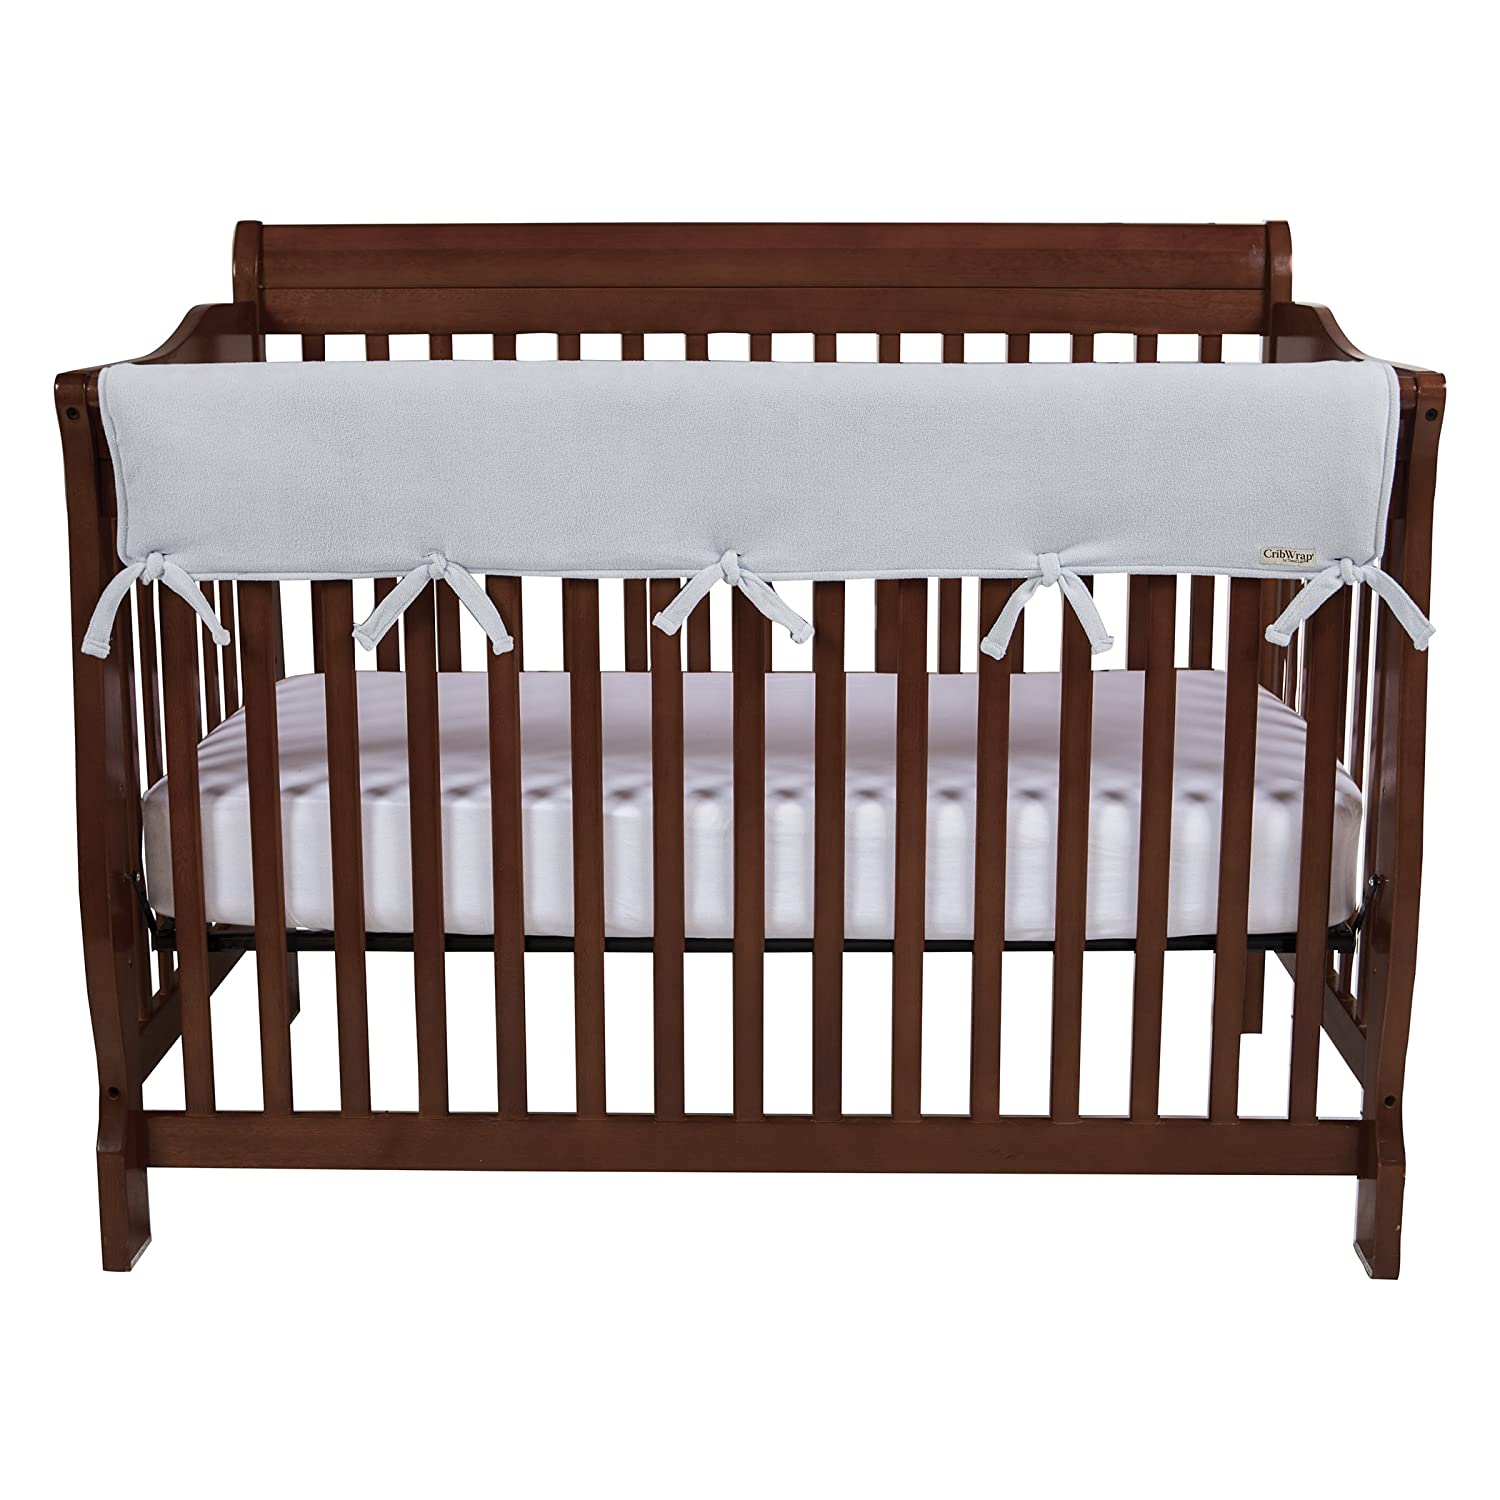 For Wide Long Crib Rails Made to Fit Rails up to 18 Around Trend Lab Waterproof CribWrap Rail Cover